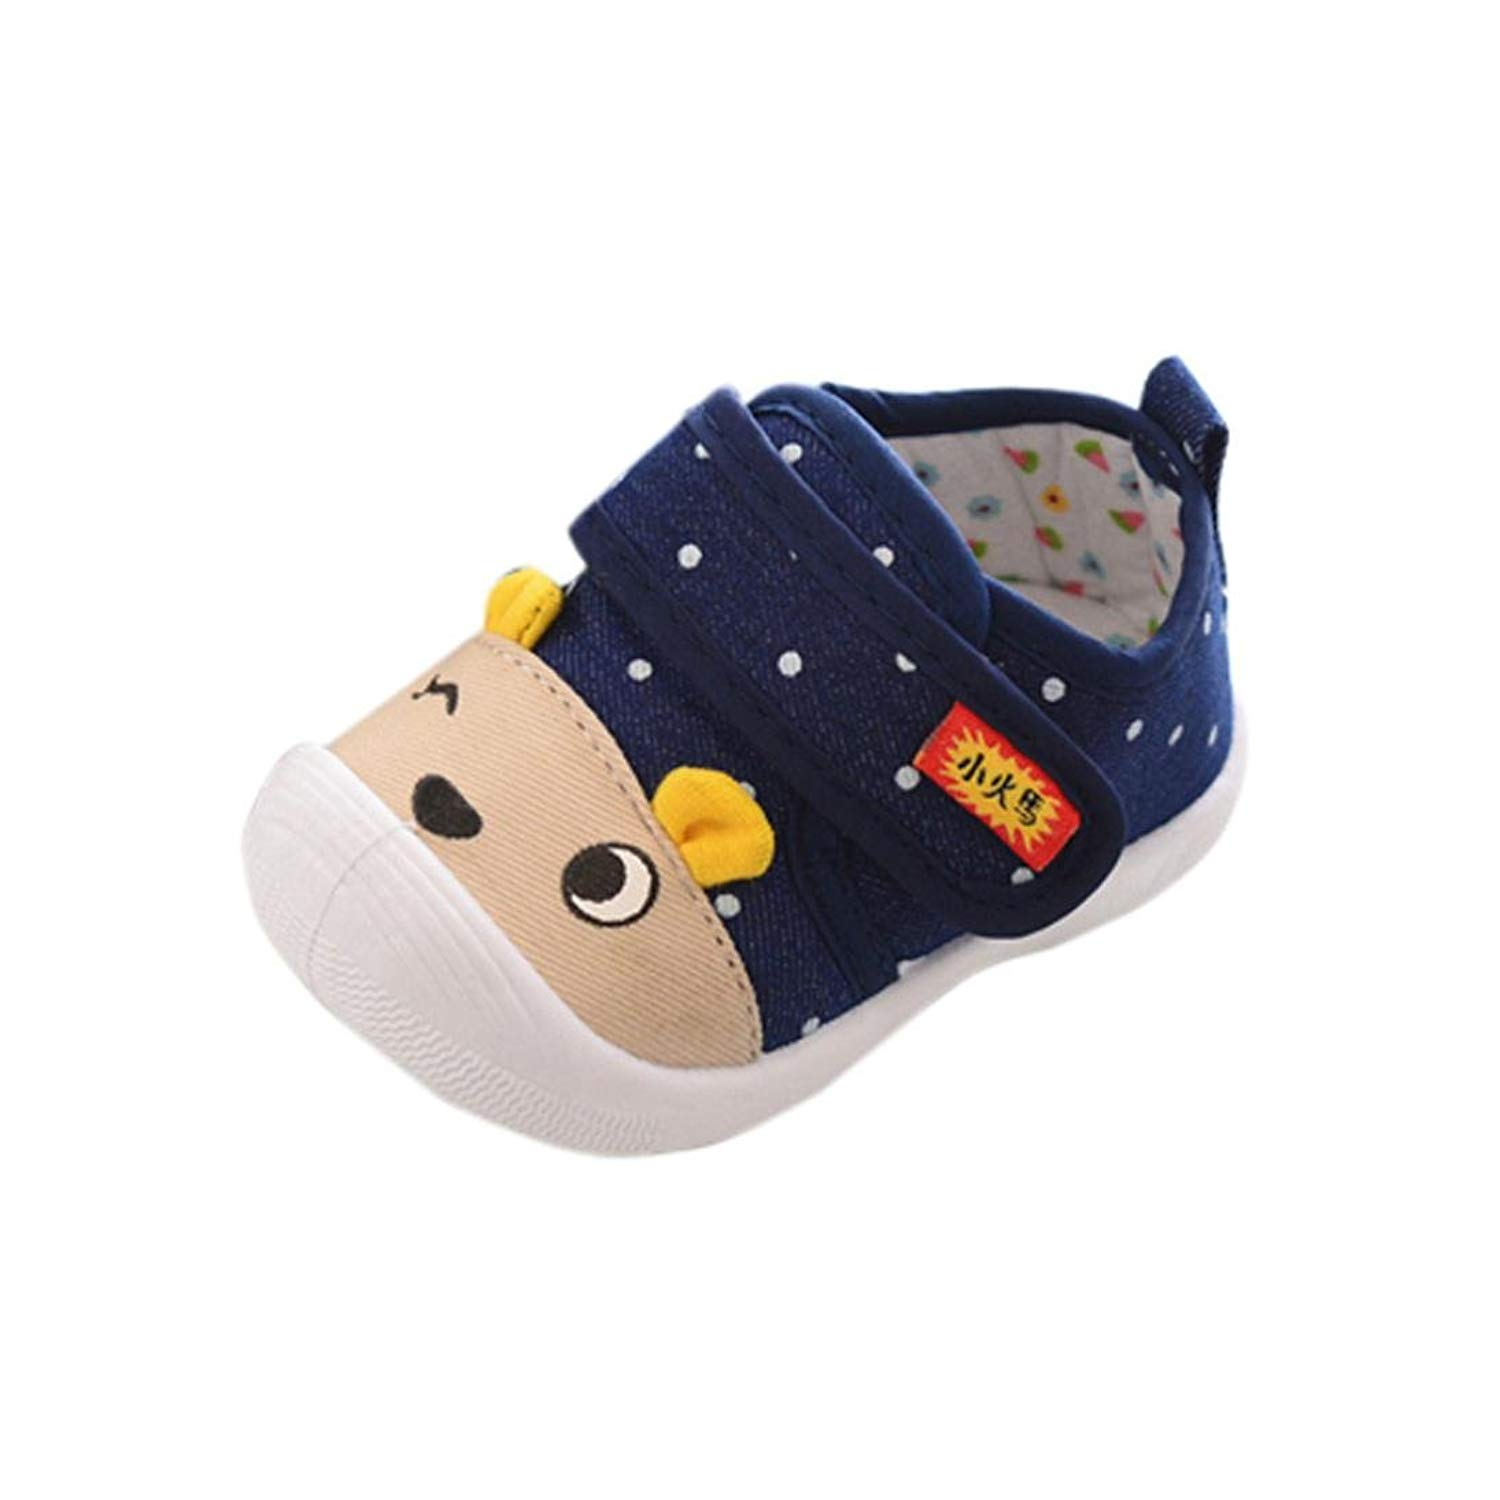 Dainzuy Infant Baby Boys Girls Cartoon Animal Print Squeaky Sandals Shoes Sneakers